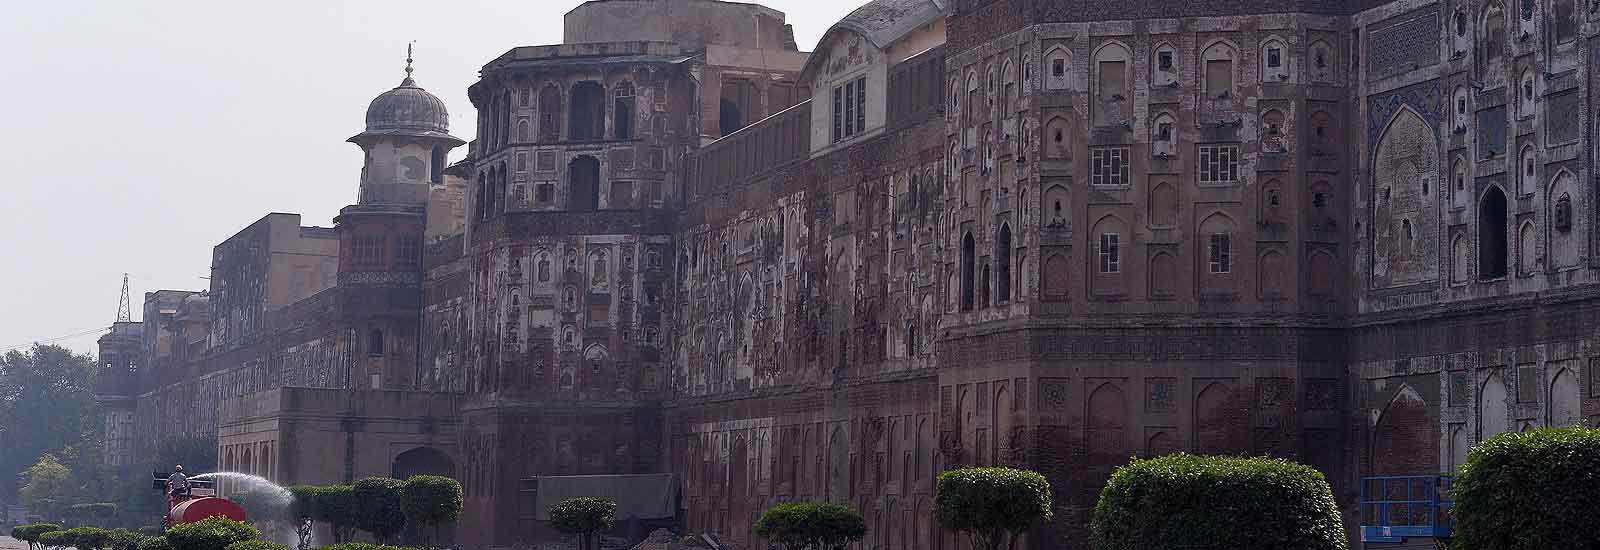 Pakistan aims to revive glory of ancient Mughal city Lahore